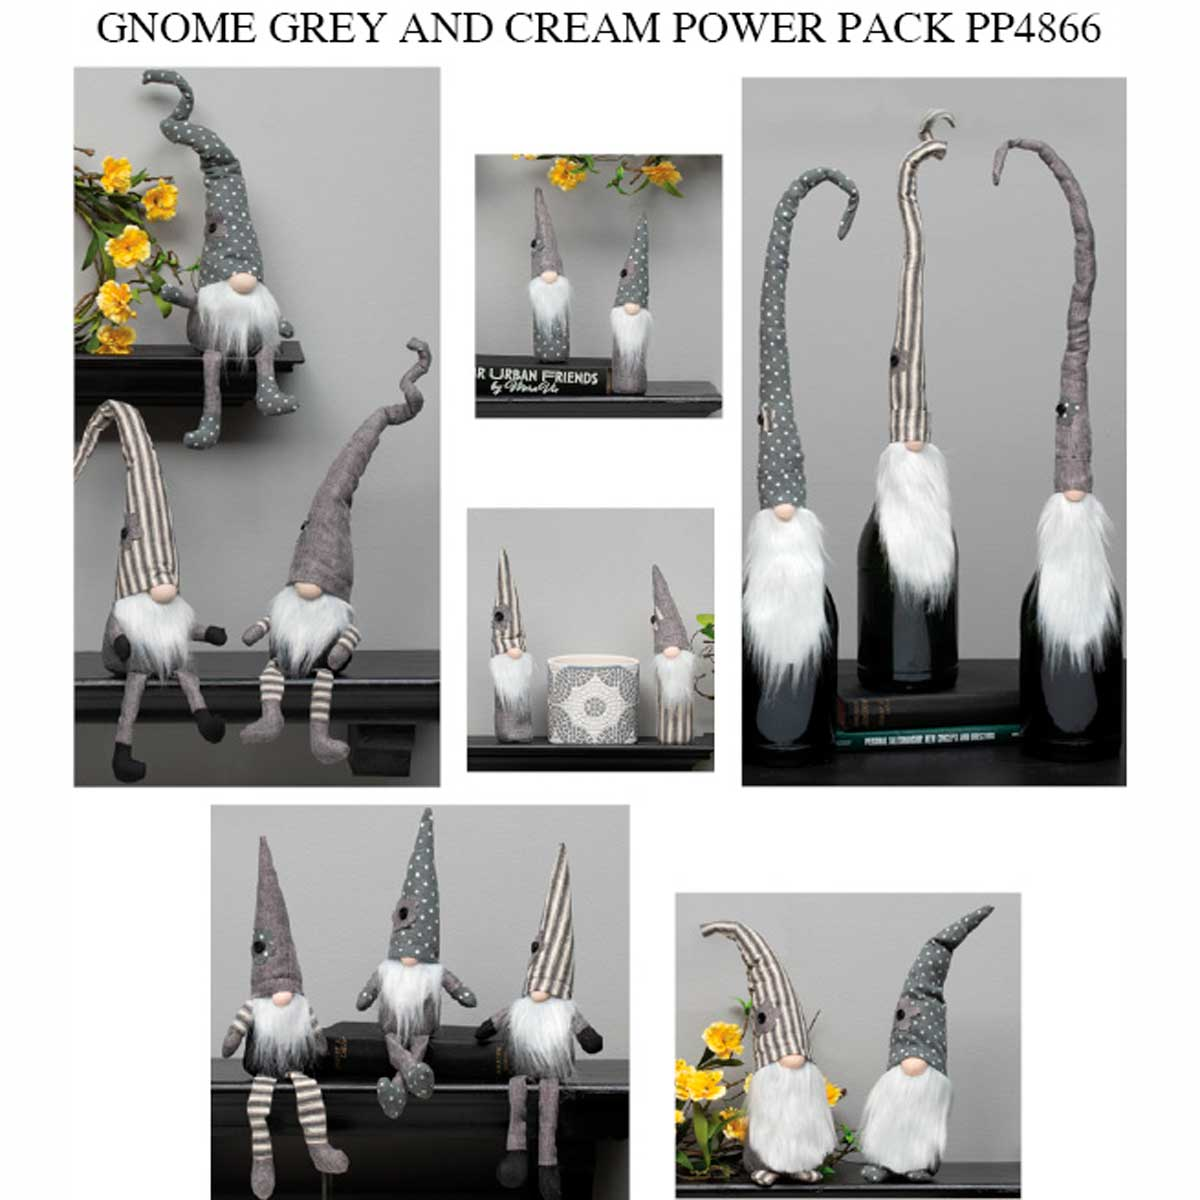 Grey & Cream Urban Gnome Collection 43 Units PP4866